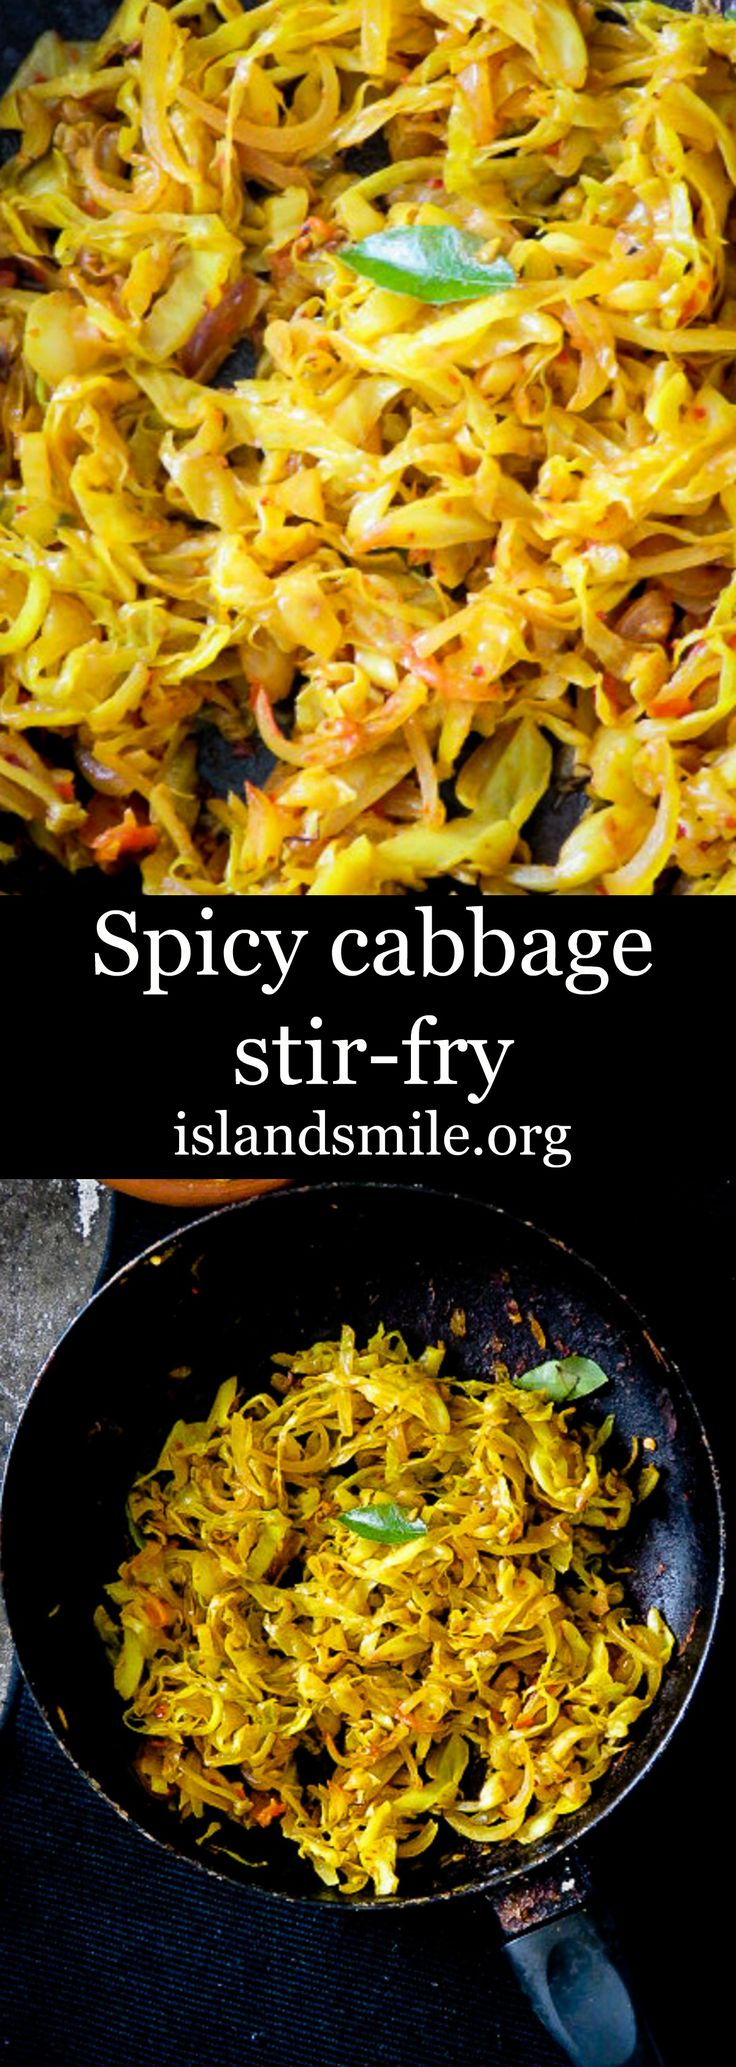 Gluten-free, vegetarian and a less than 20-minute dish to prepare, you'll want to try a Spicy chilli Cabbage stir-fry next time you spot this vegetable at the farmers market.